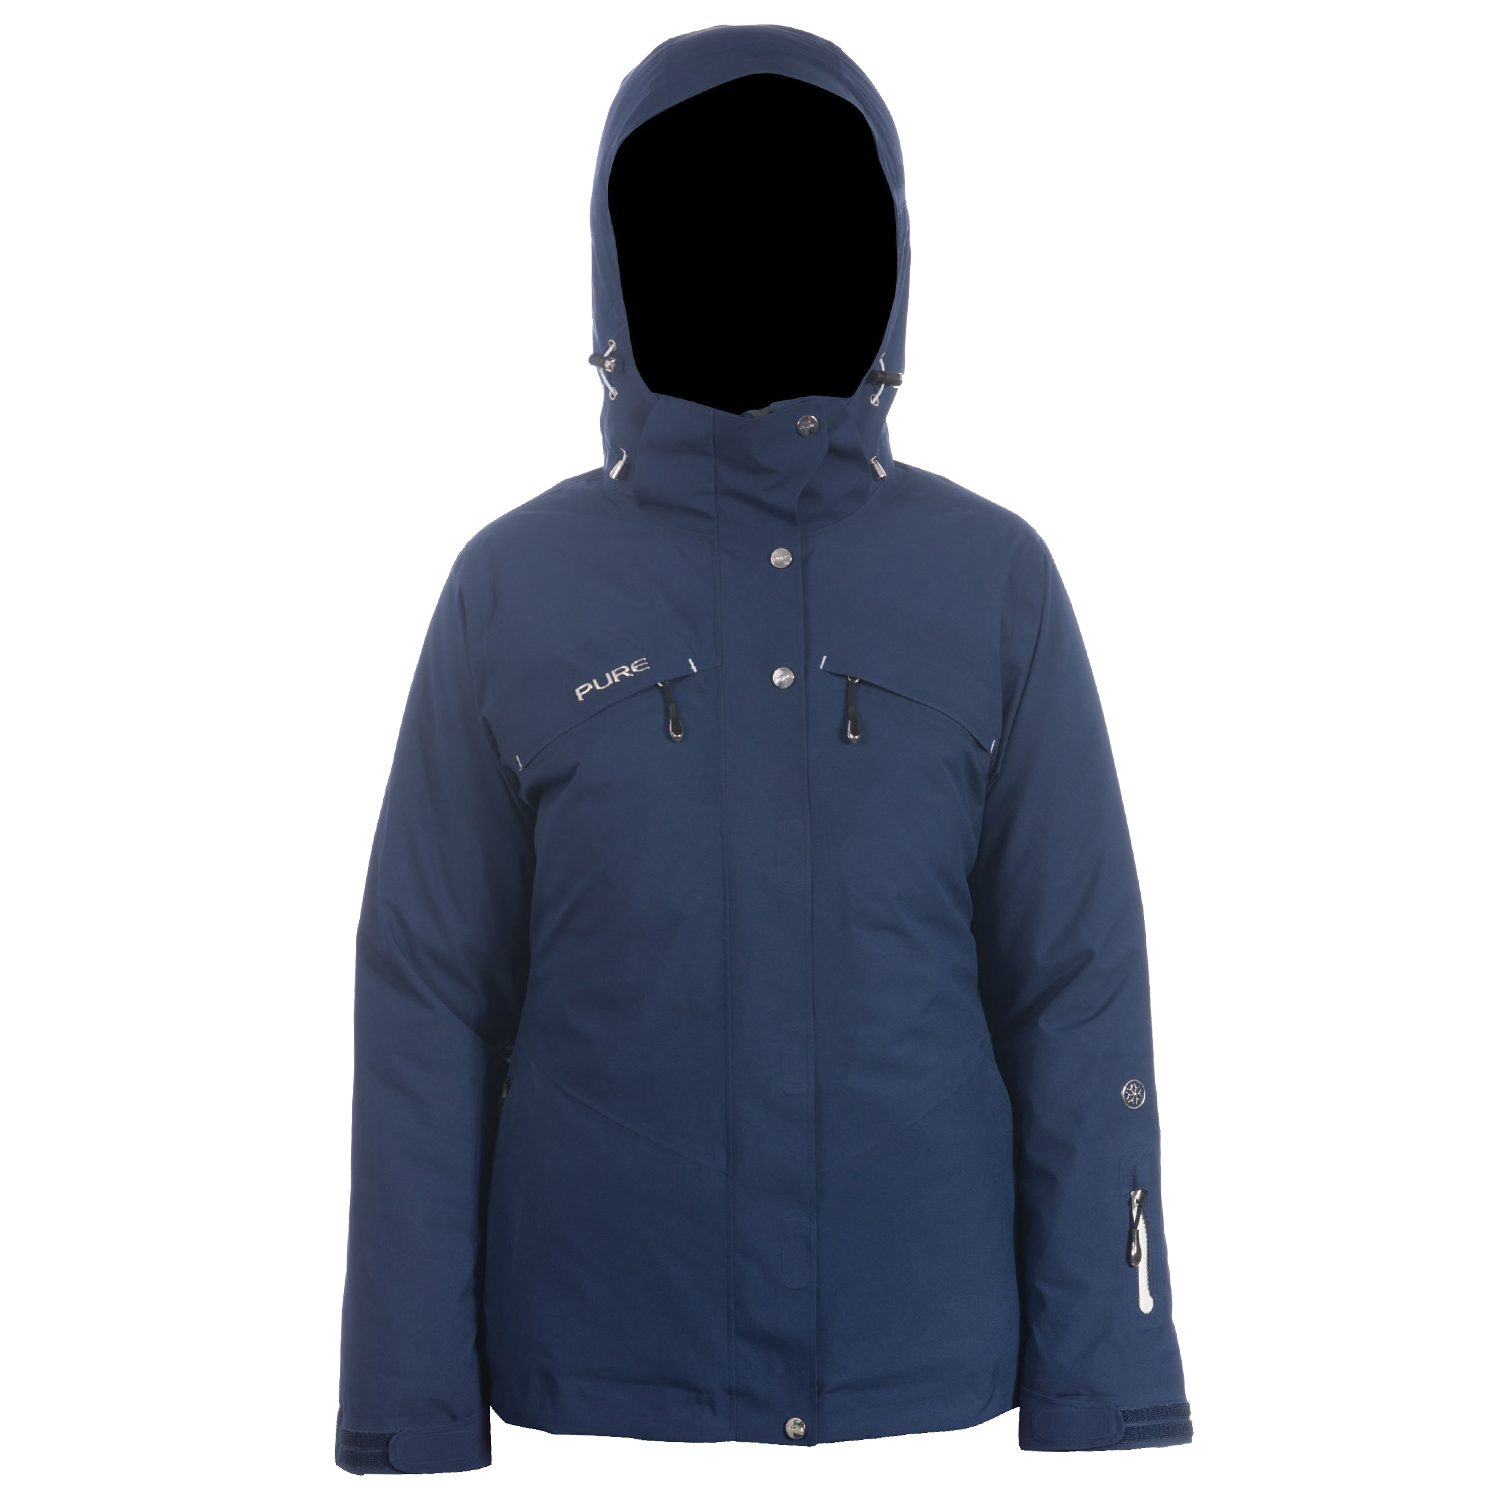 Meribel Jacket - Navy